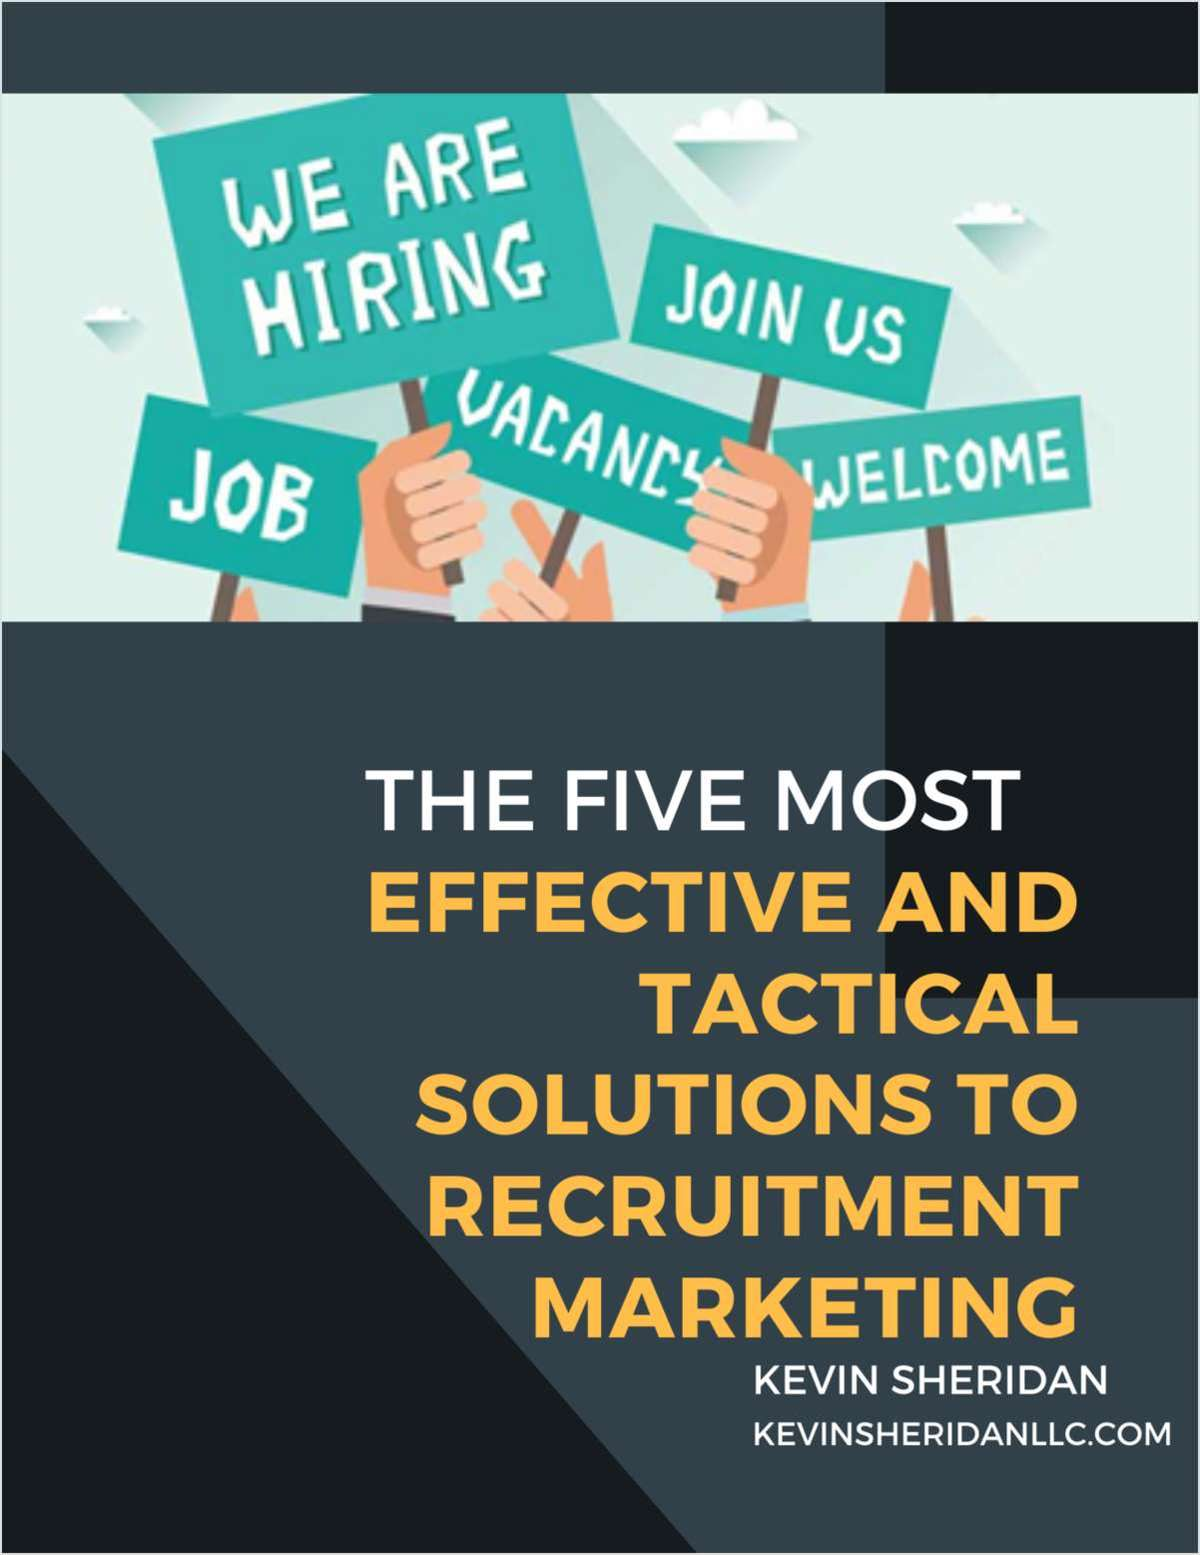 The 5 Most Effective & Tactical Solutions To Recruitment Marketing